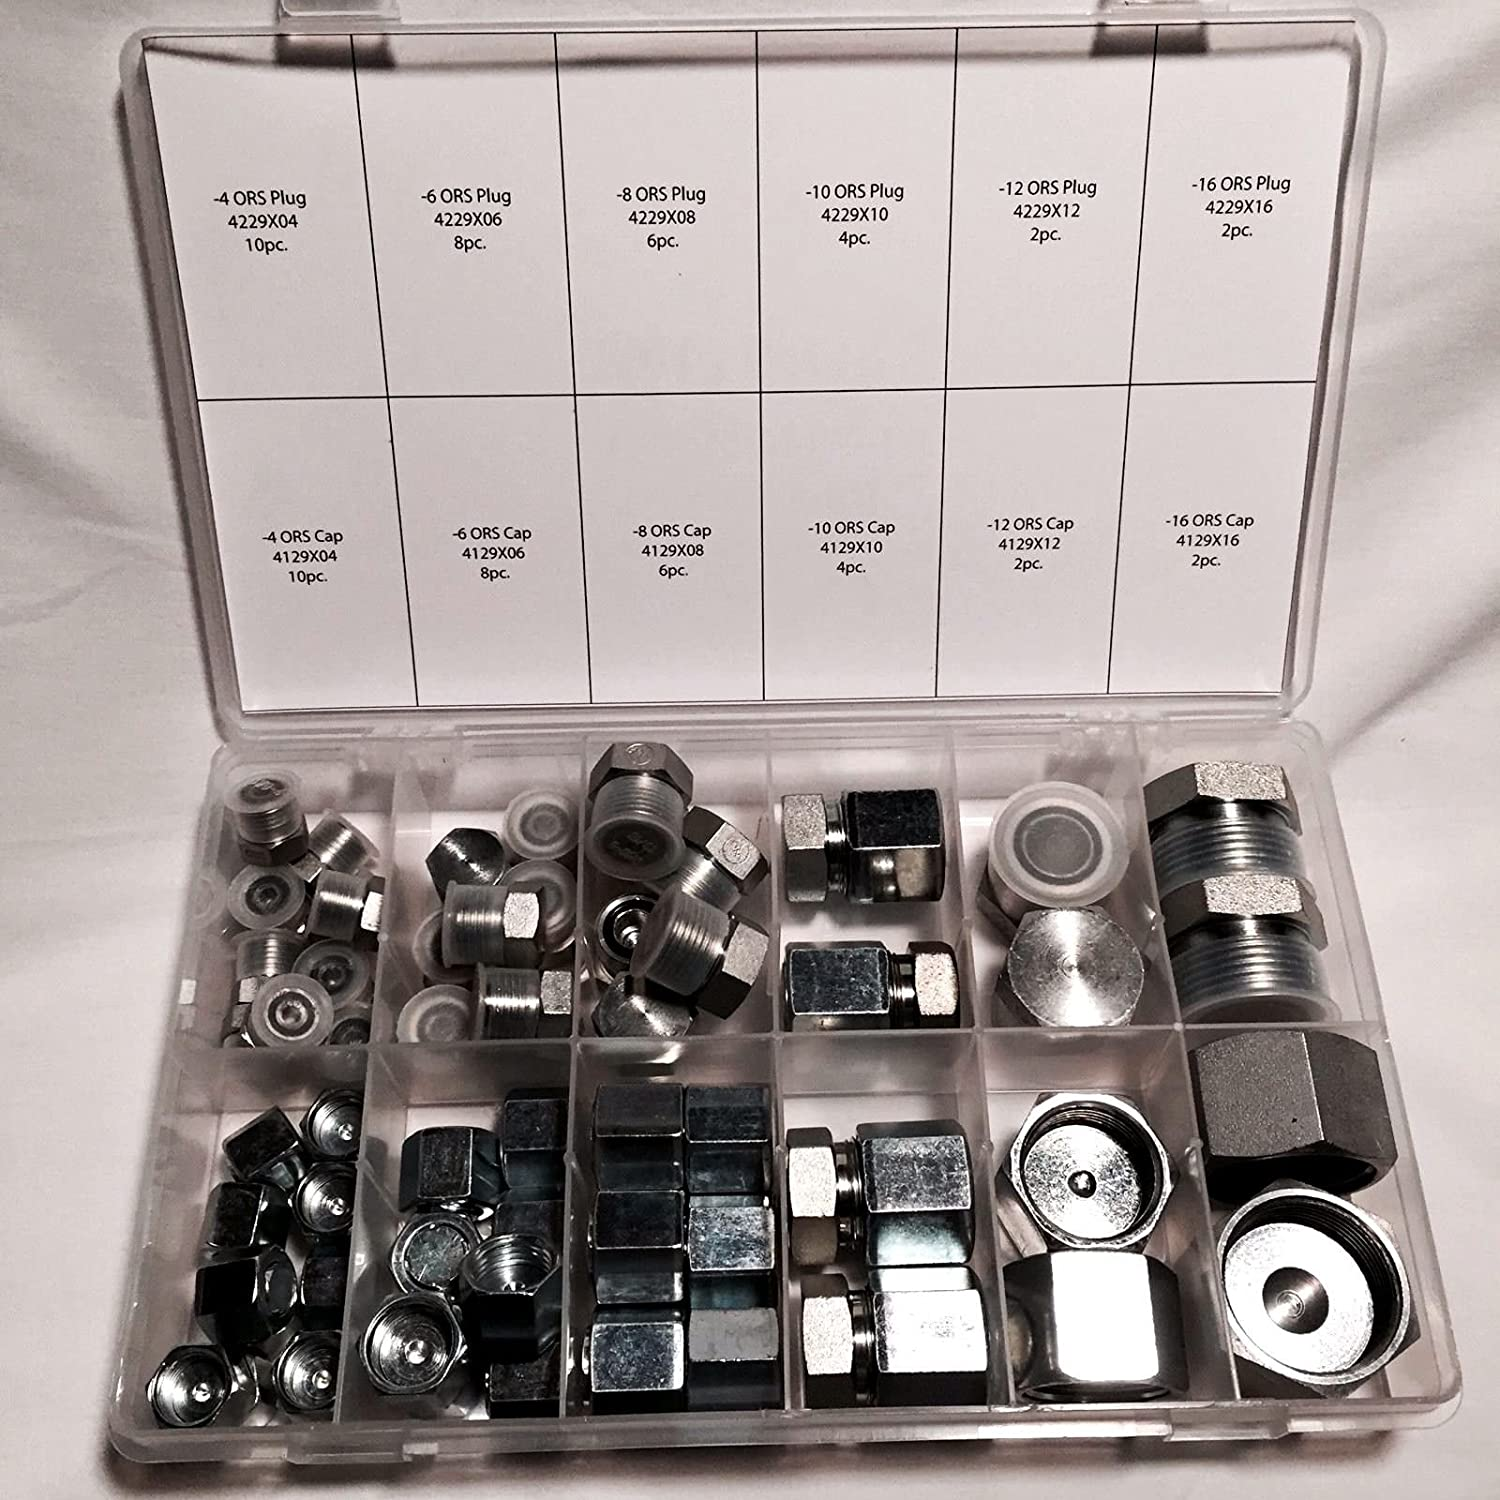 64 PC LOT ORFS O-RING ORS PLUG AND CAP HYDRAULIC FITTINGS FLAT FACE SEAL KIT SET Hydraulic Supply USA®